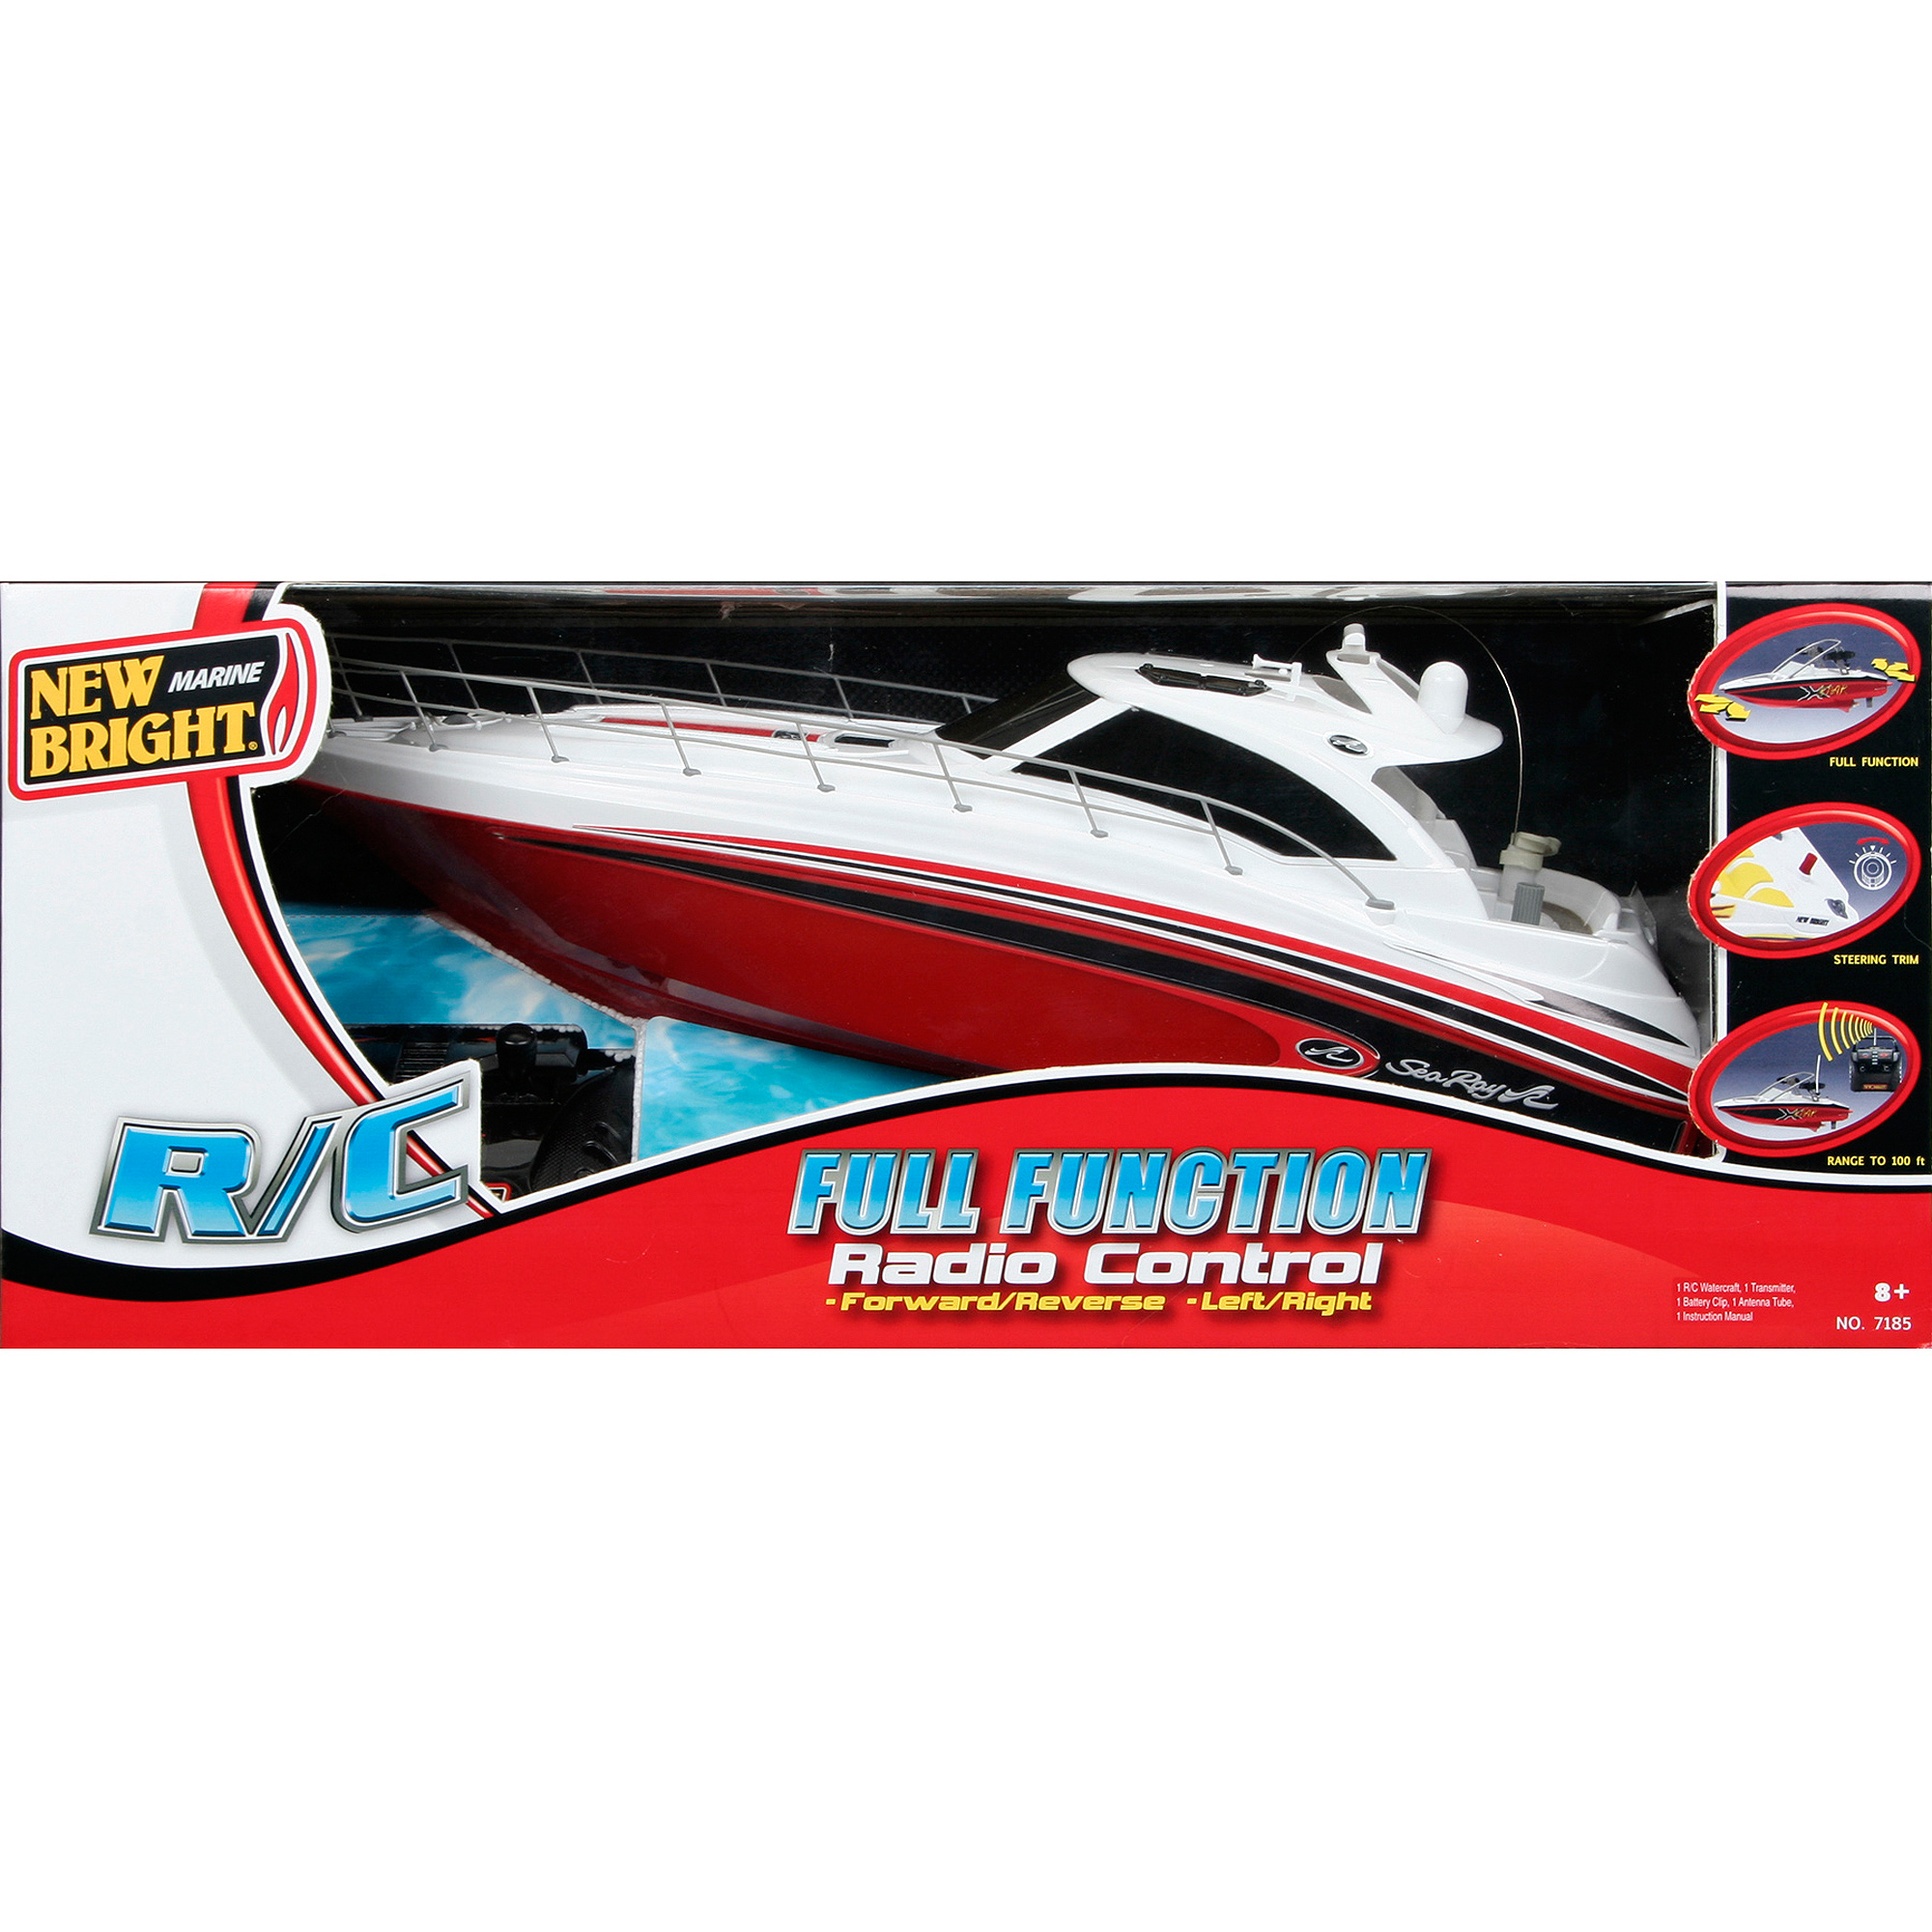 "New Bright 18"" Radio Control Full-Function Sea Ray Boat, Red"